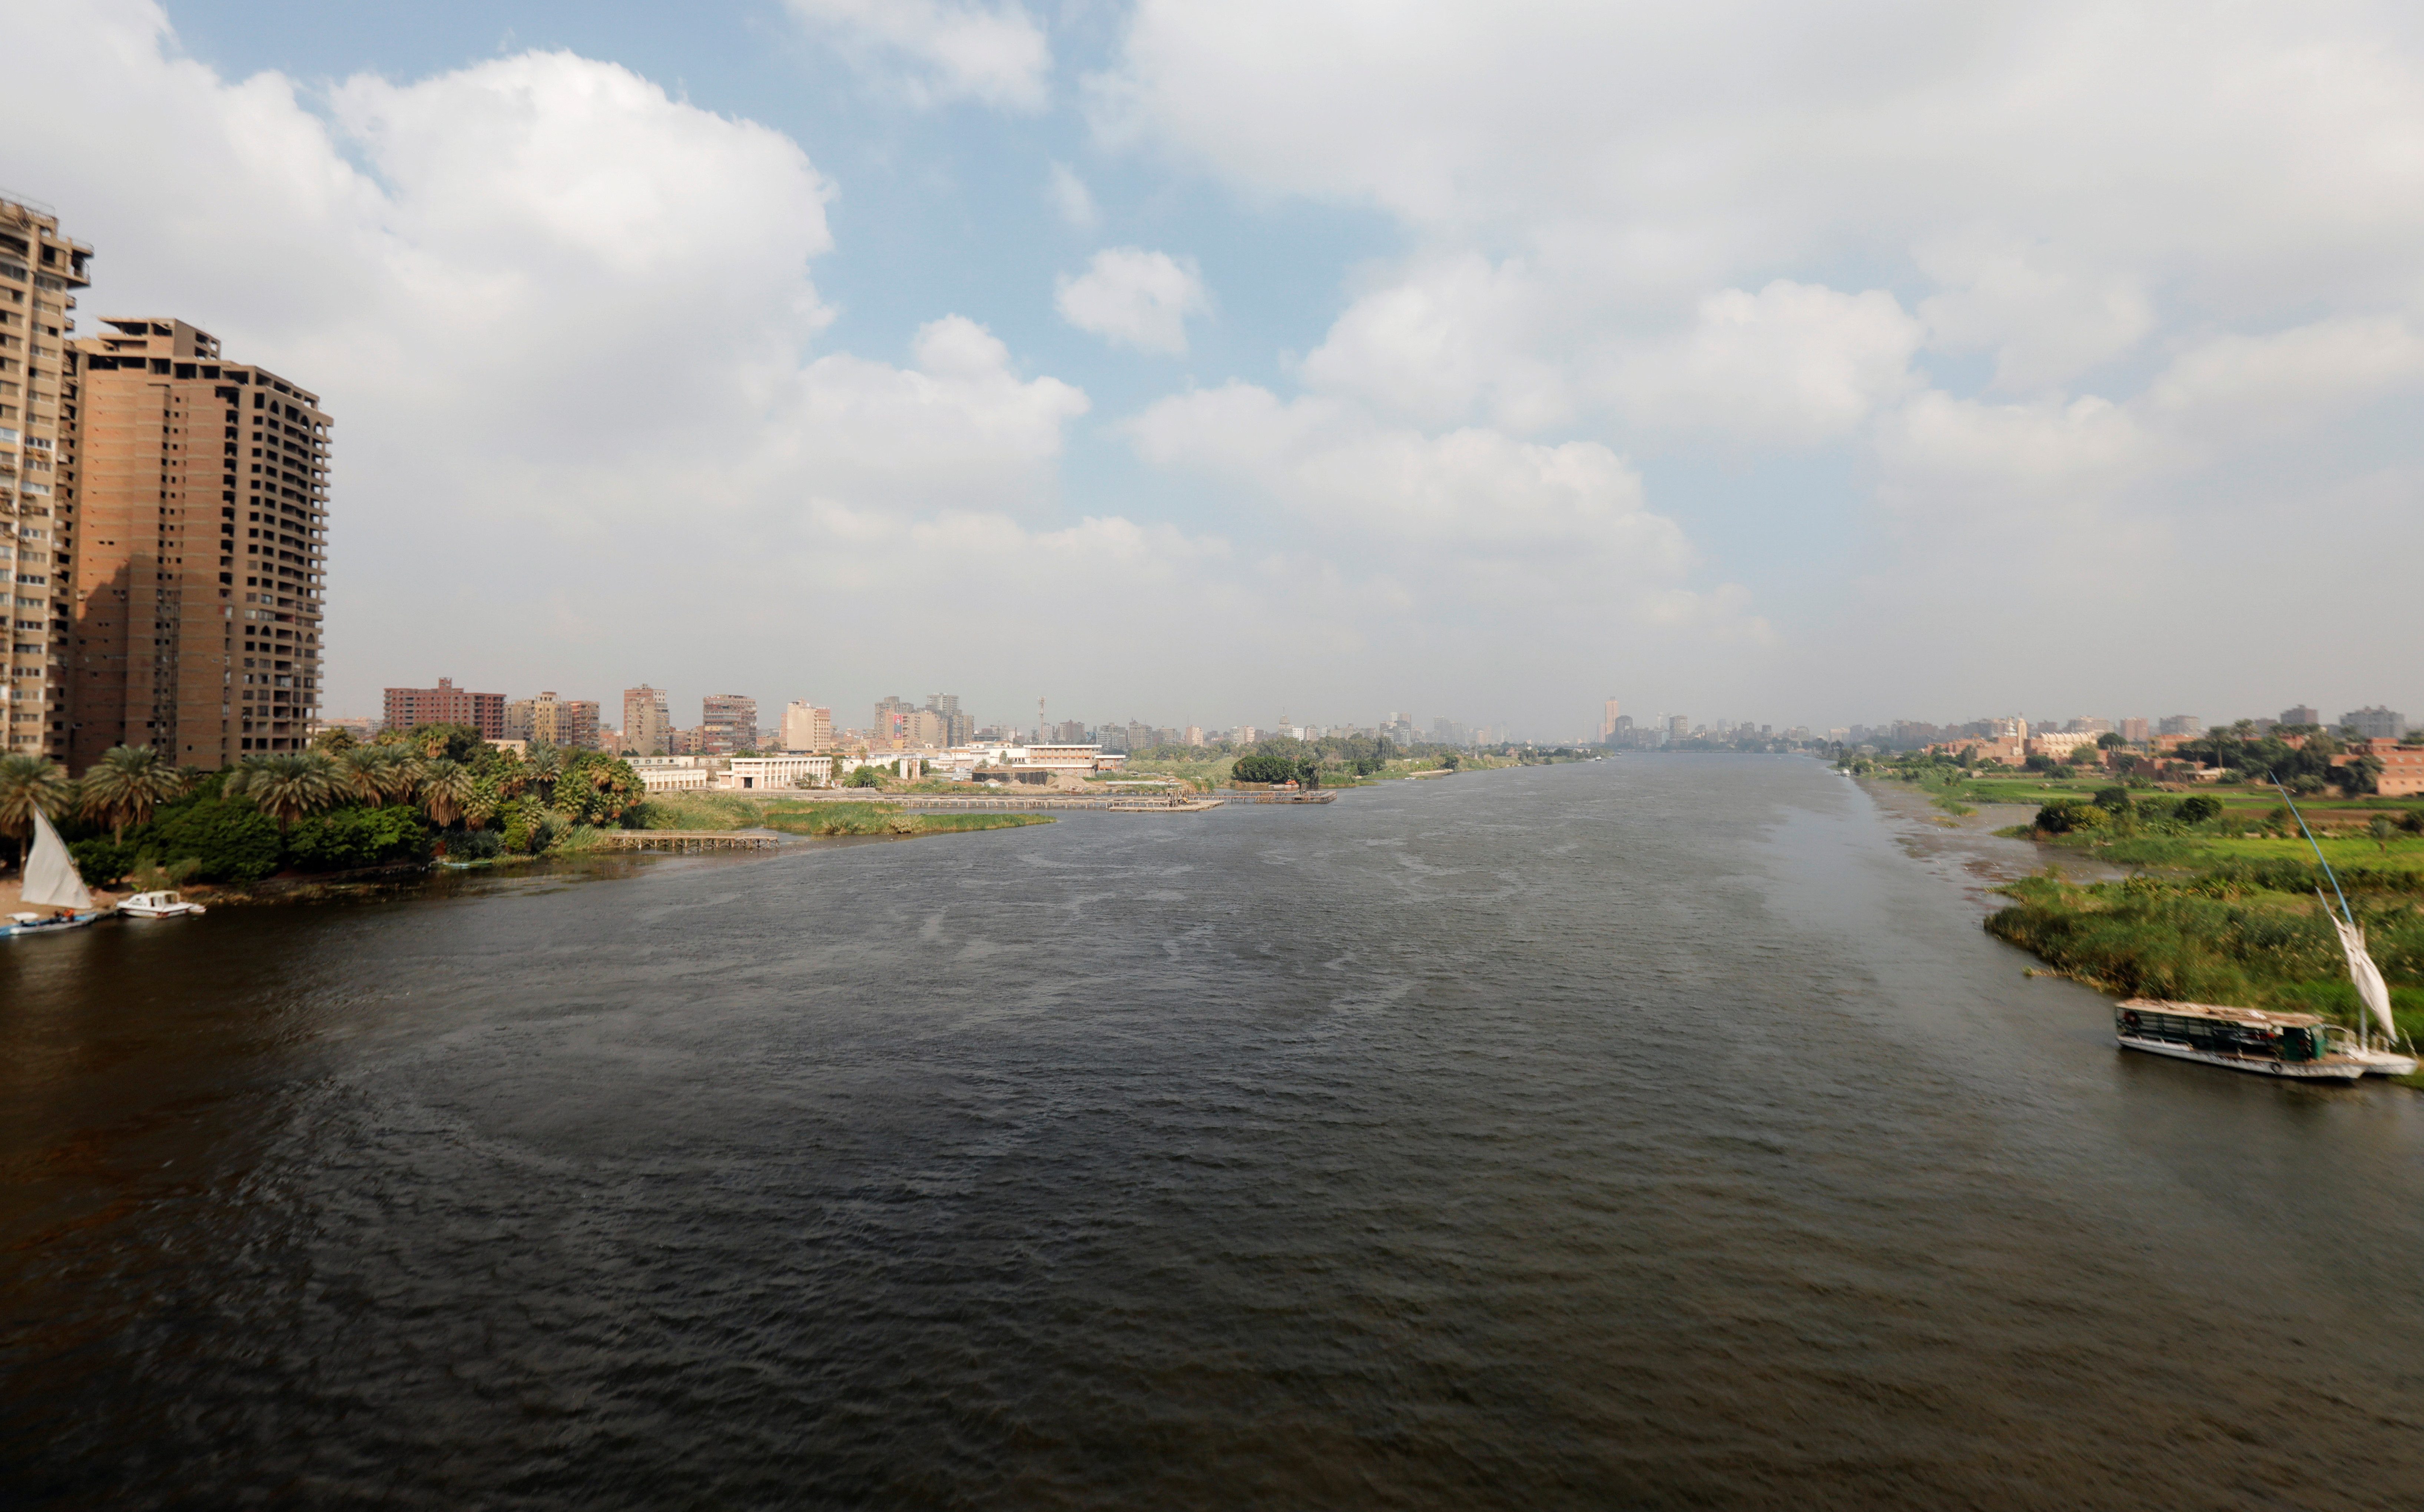 A general view shows the River Nile with houses and farmland in Cairo, Egypt November 6, 2019. REUTERS/Amr Abdallah Dalsh - RC2Q5D9MX7RD